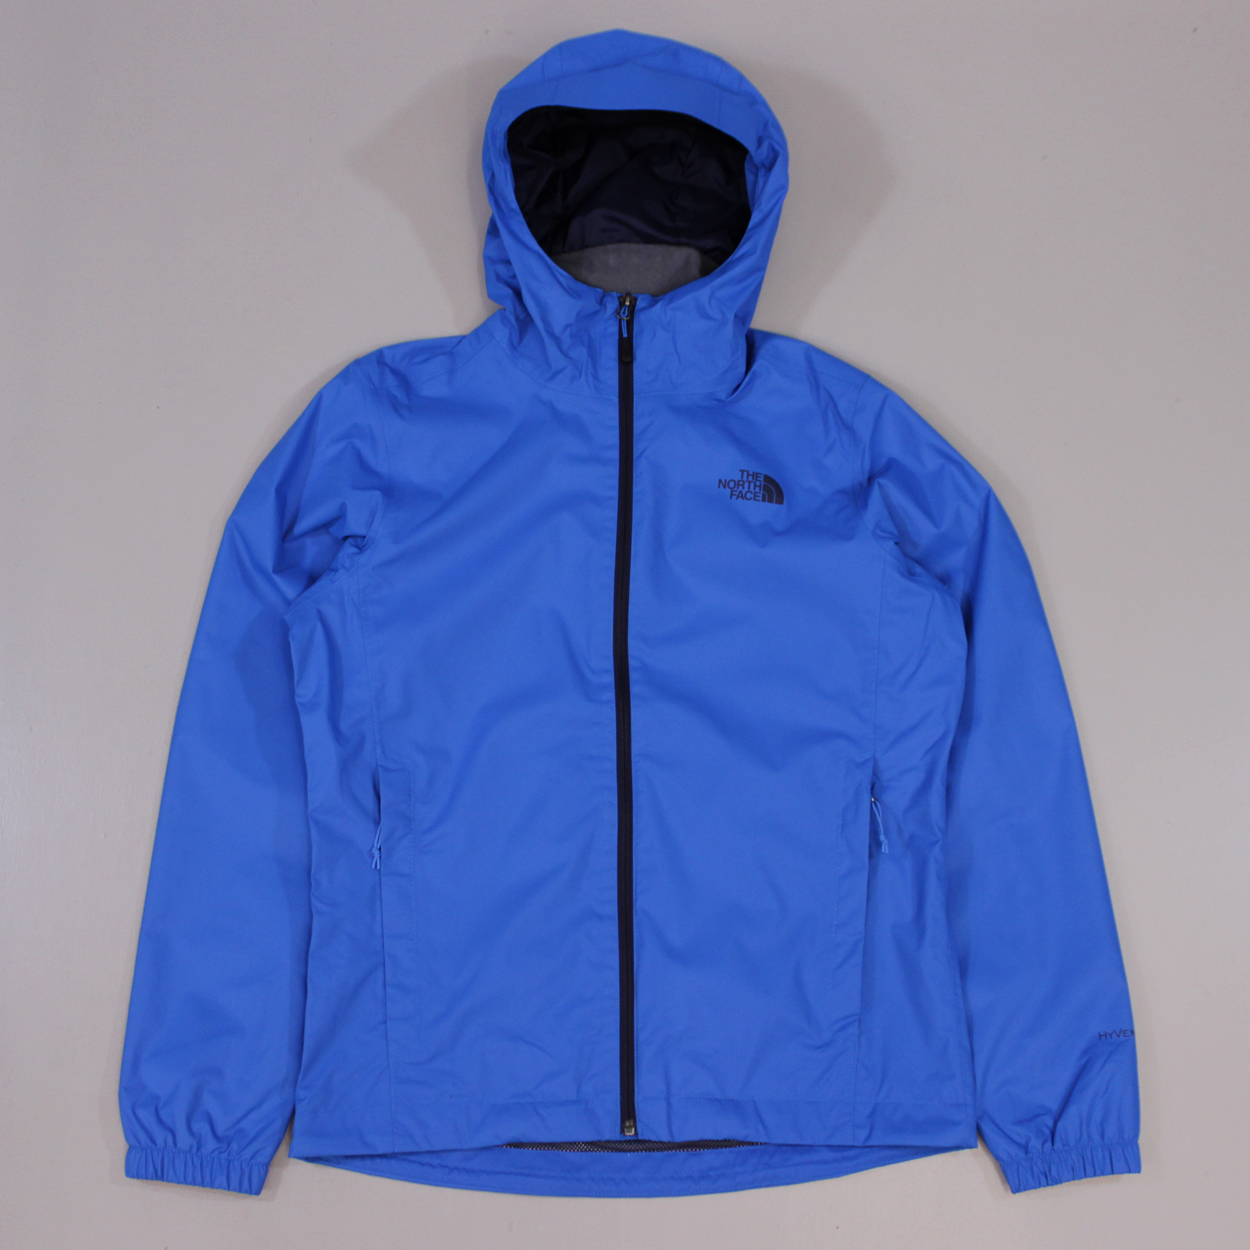 The-North-Face-Mens-Quest-Jacket-Drummer-Blue-Waterproof-Coat-Outdoor-Zip-Hood